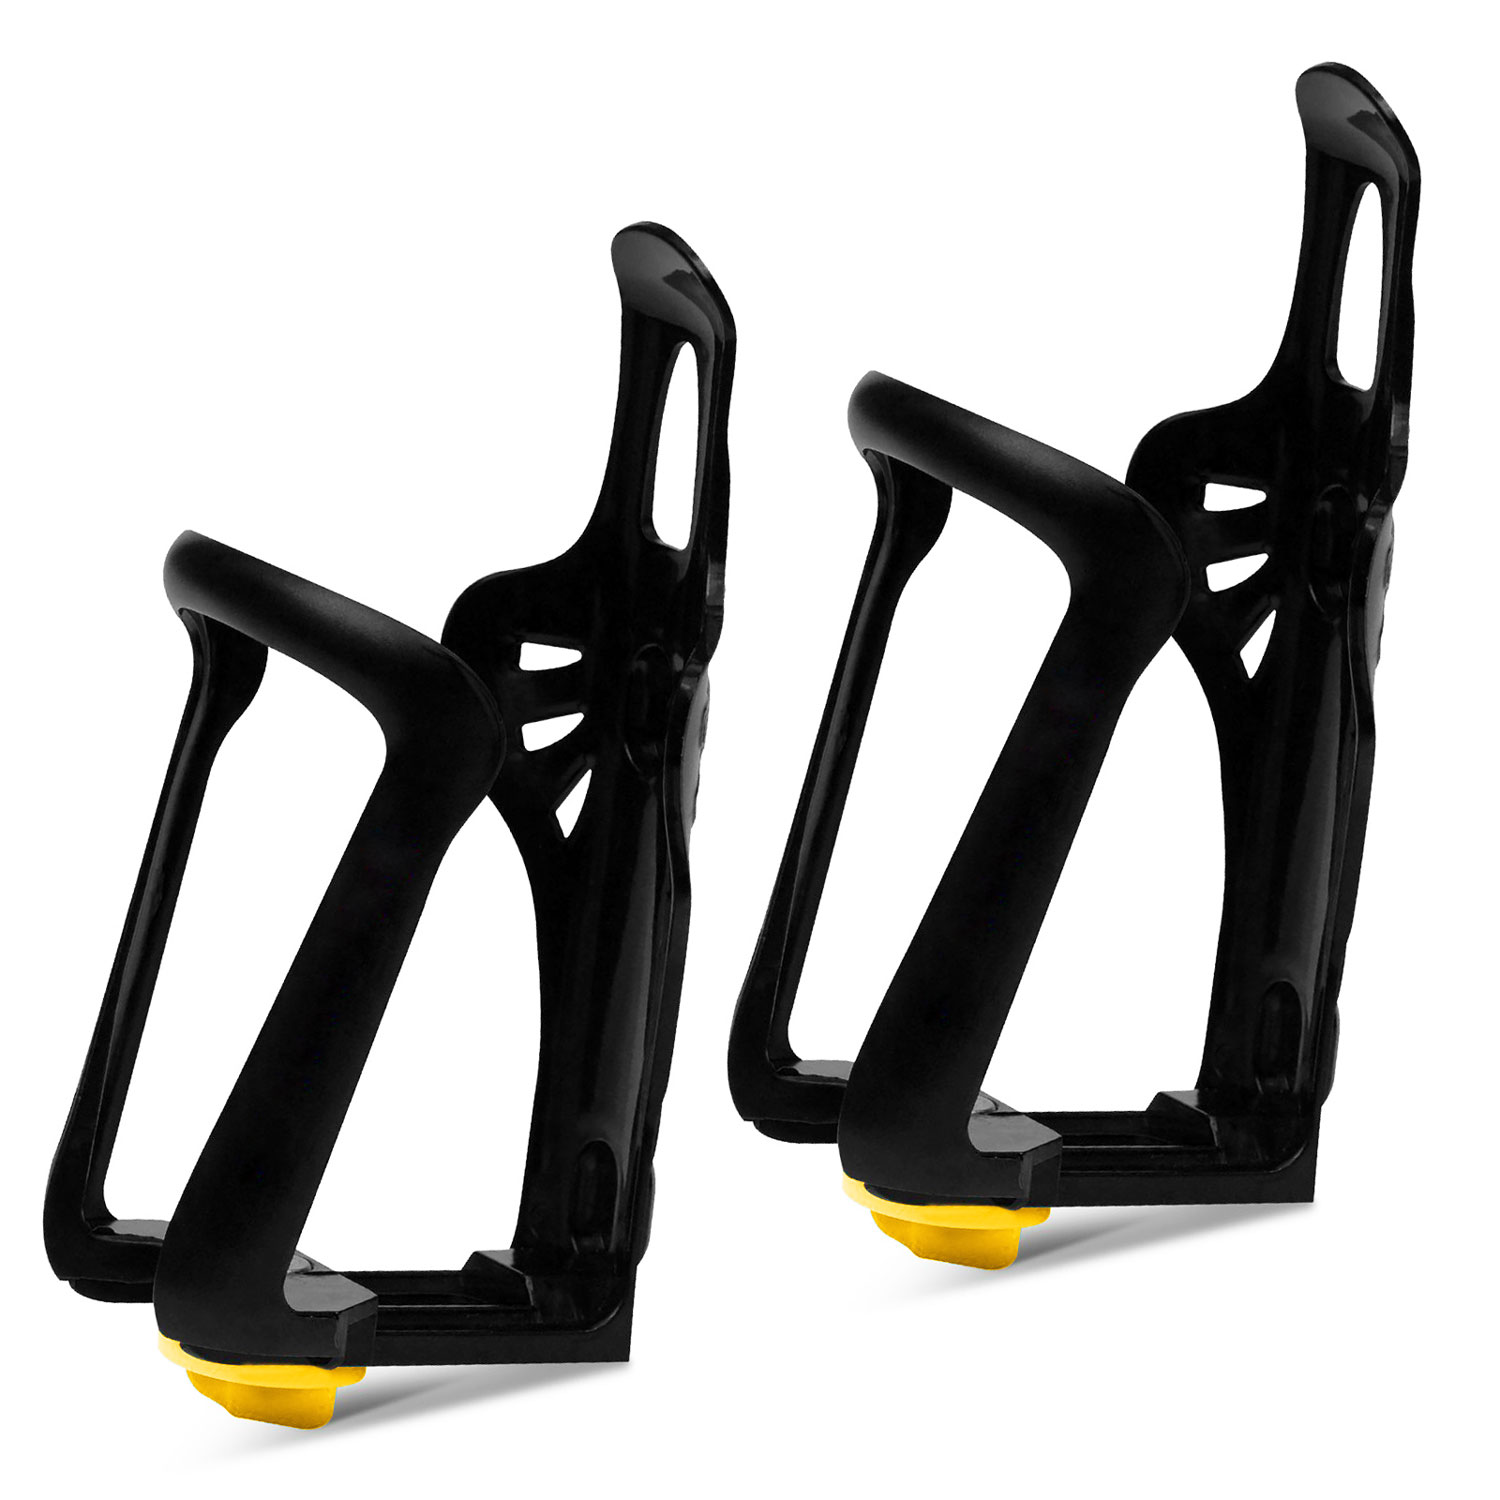 EEEKit 2 Packs Adjustable Plastic Mountain Bike Cycling Road Bicycle Water Bottle Holder Rack Cage